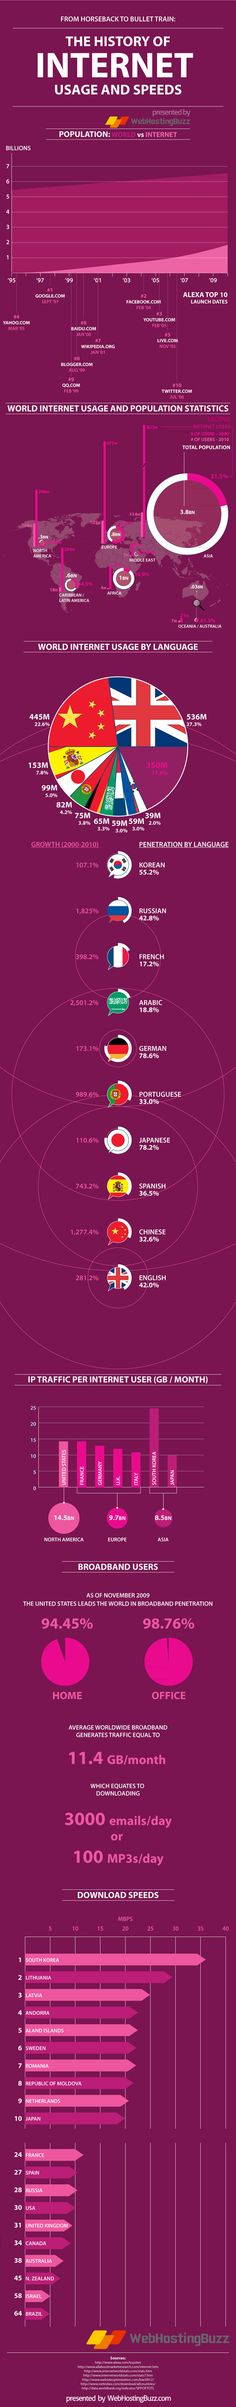 The Internet usage infographic